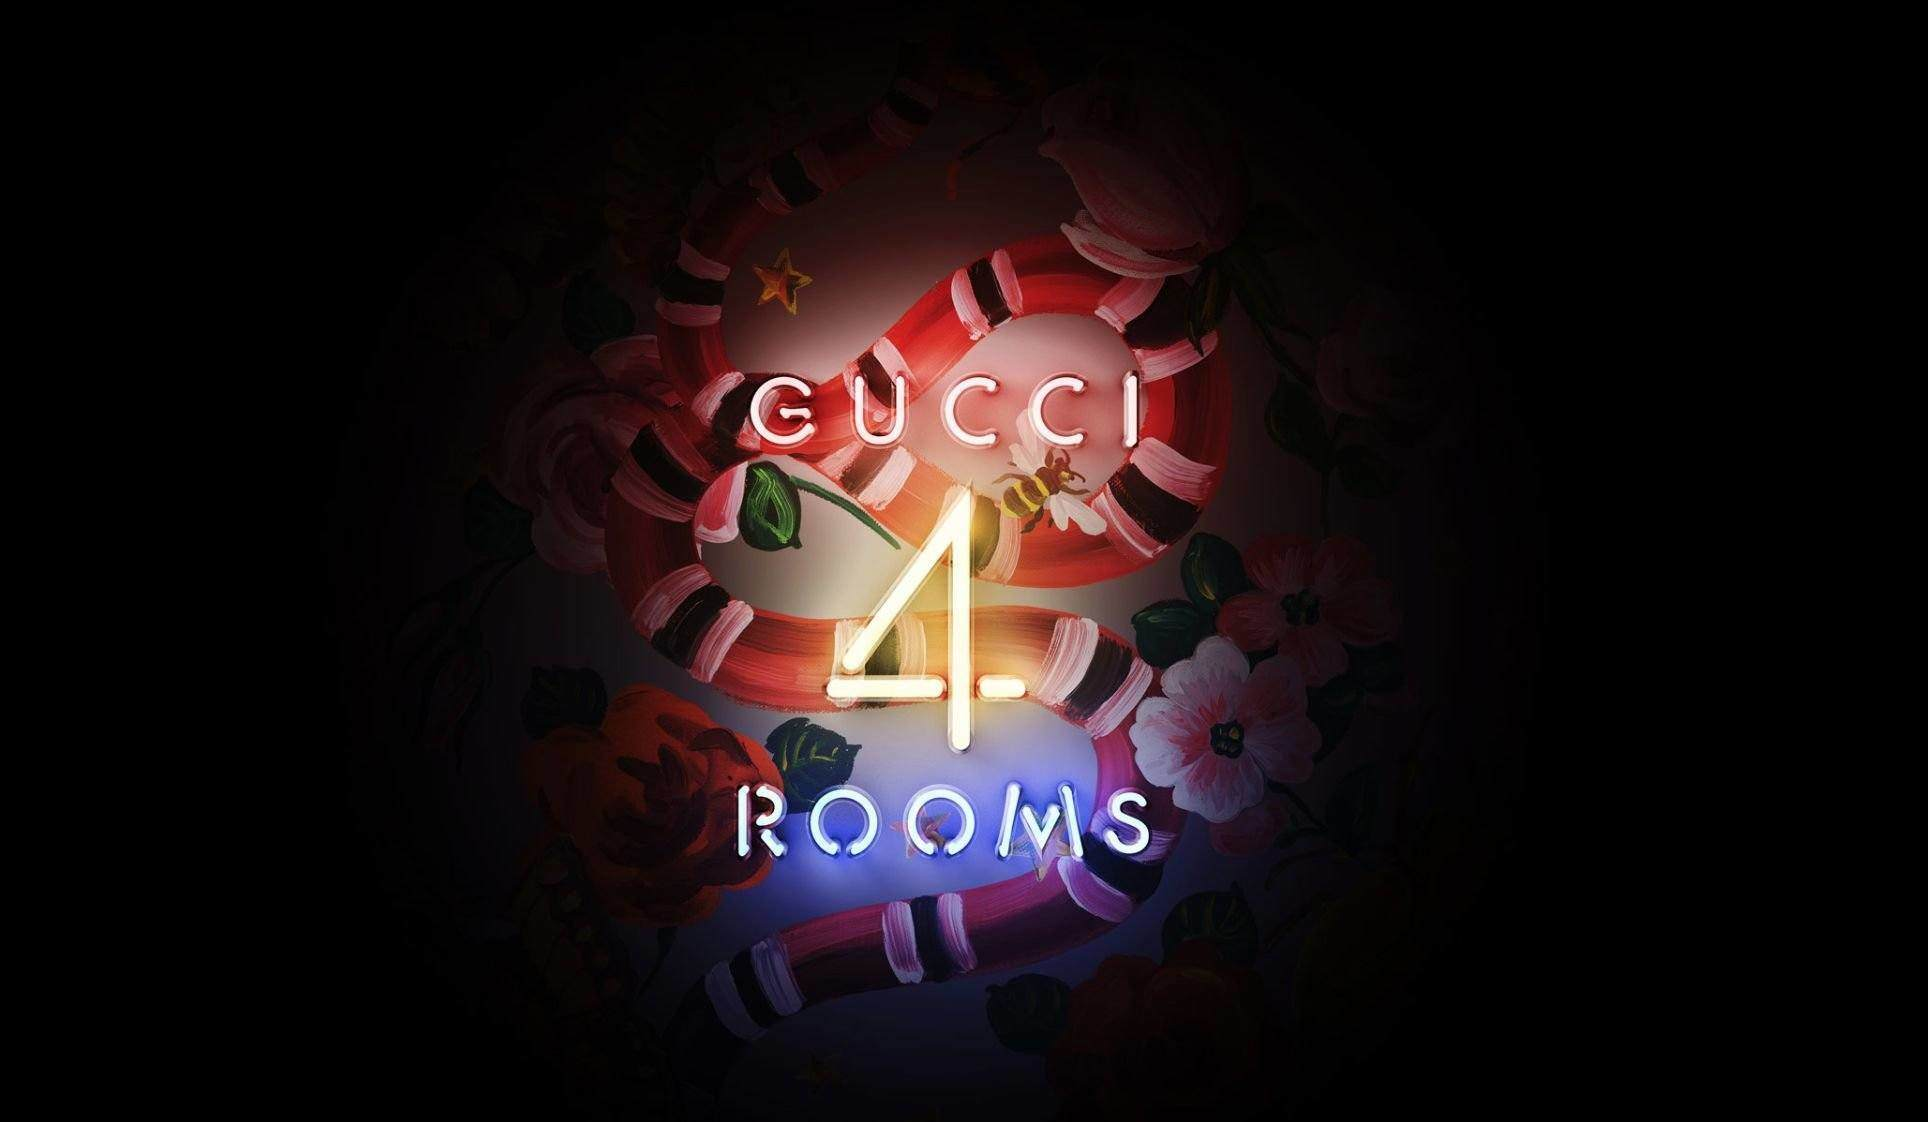 Gucci 4 Rooms